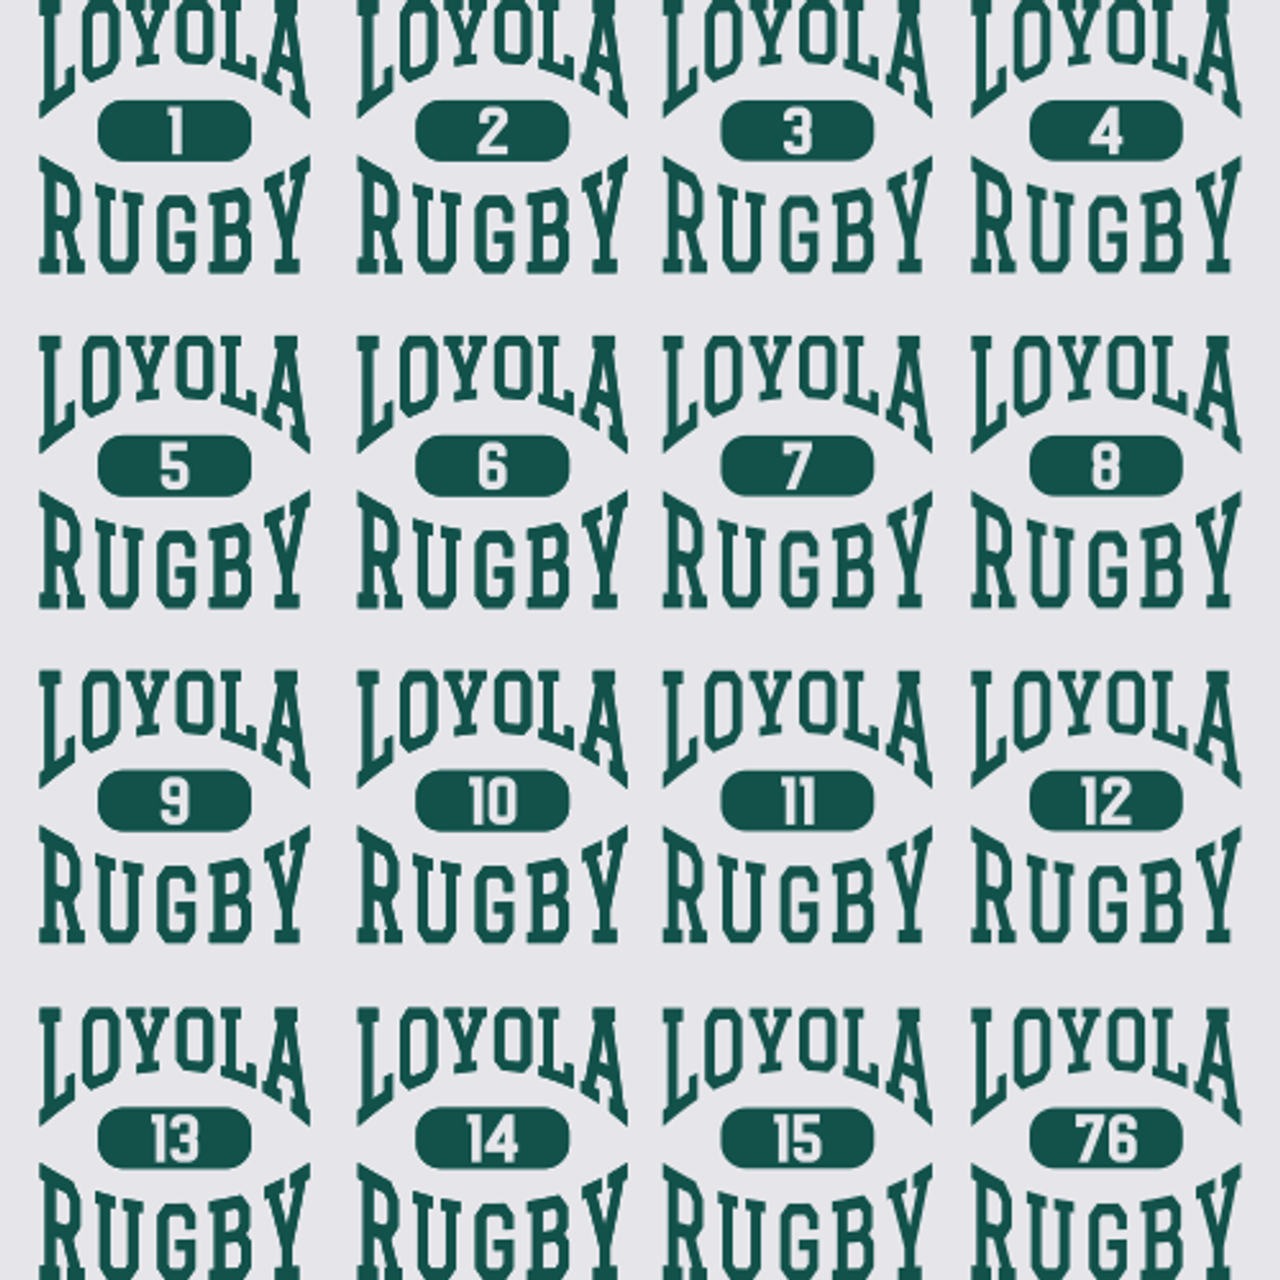 YOUR CHOICE of number is used for production.  You can use standard rugby numbers or graduation year.